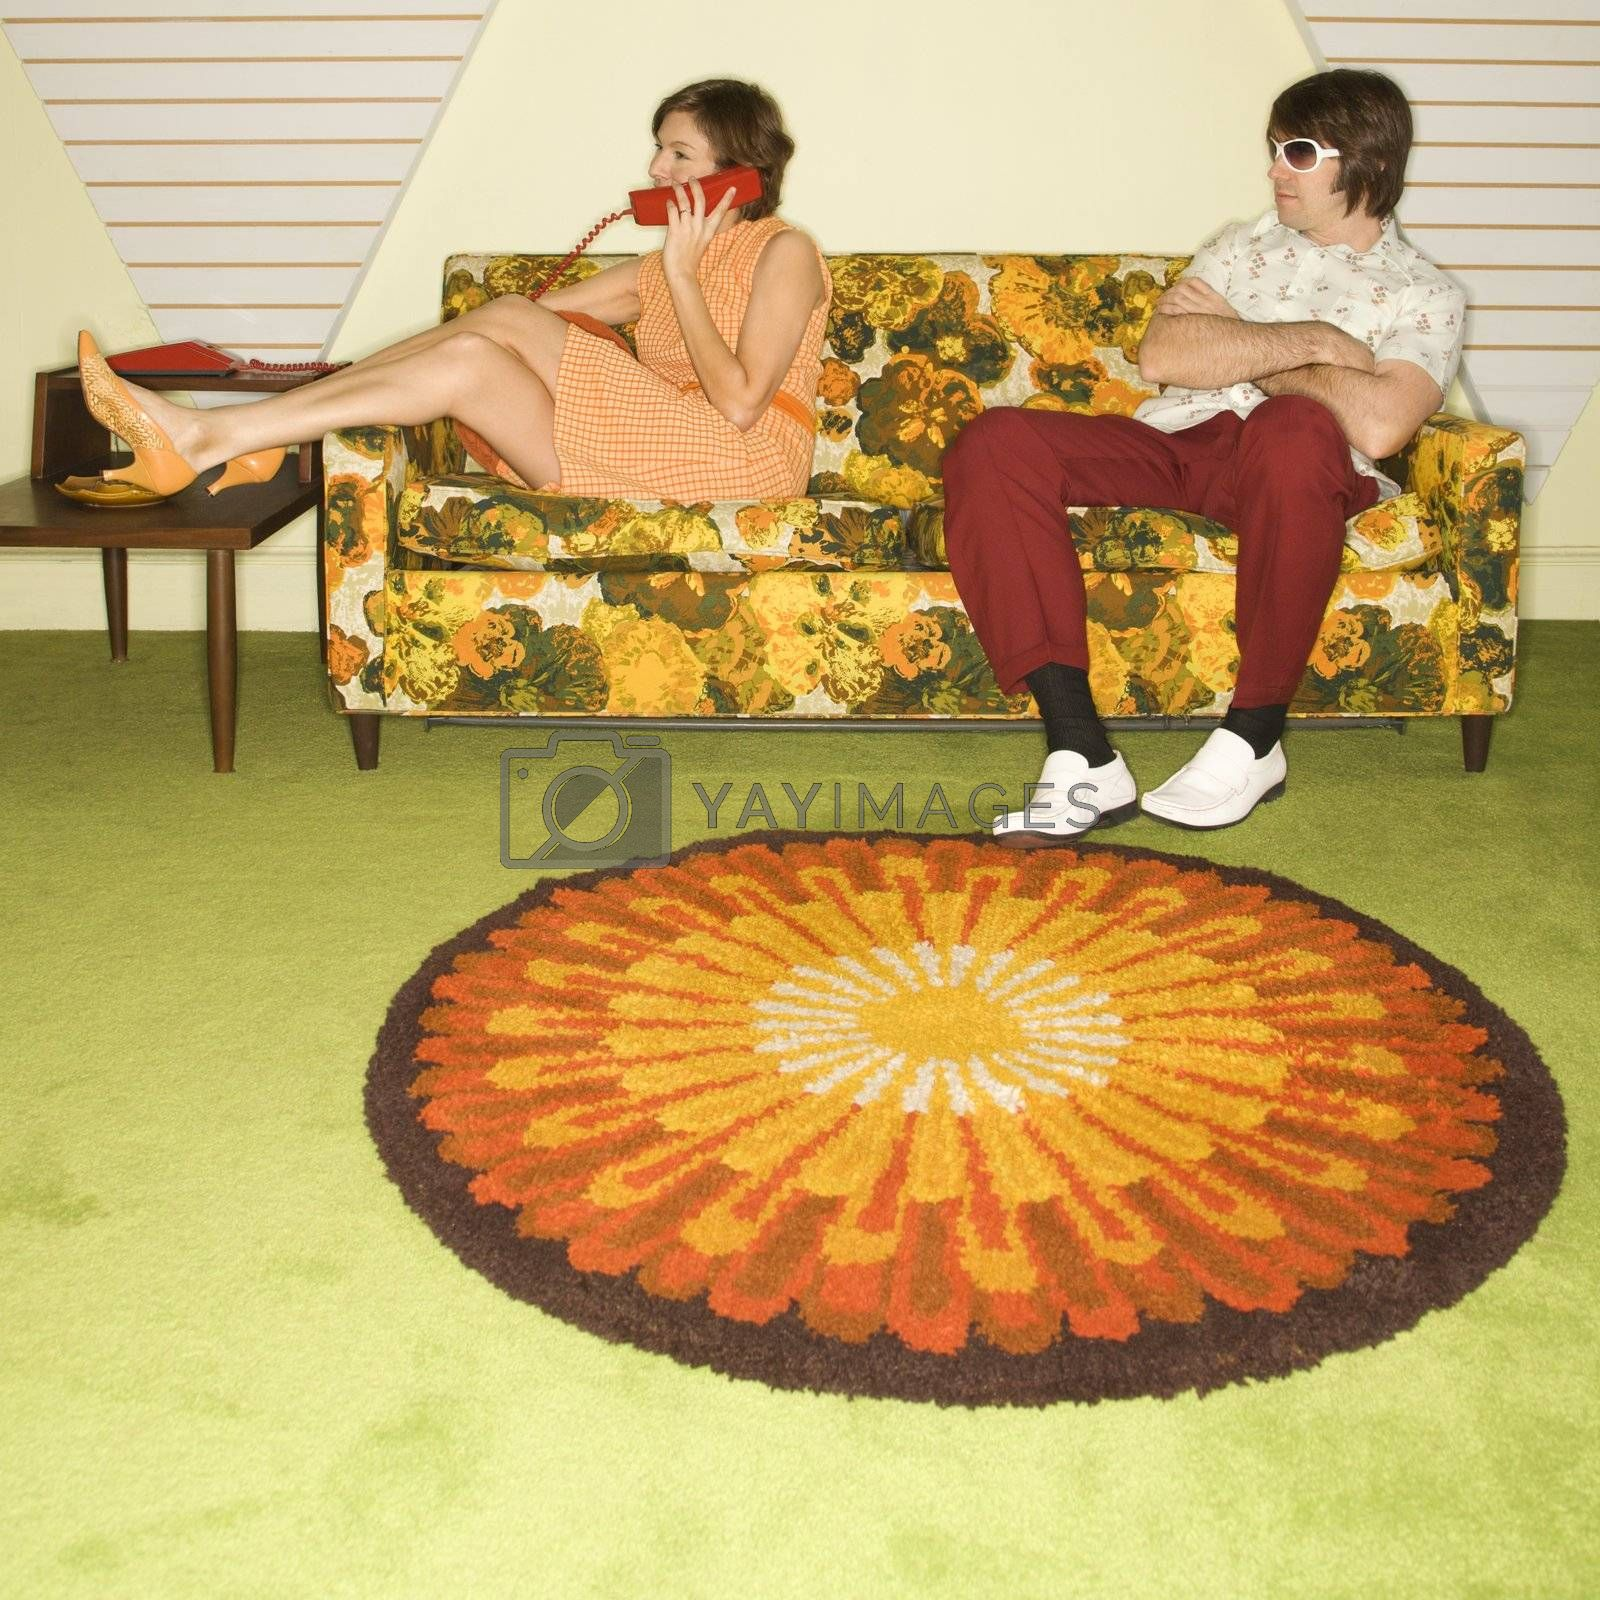 Caucasian mid-adult woman on phone while Caucasian mid-adult man wearing sunglasses watches from sofa.